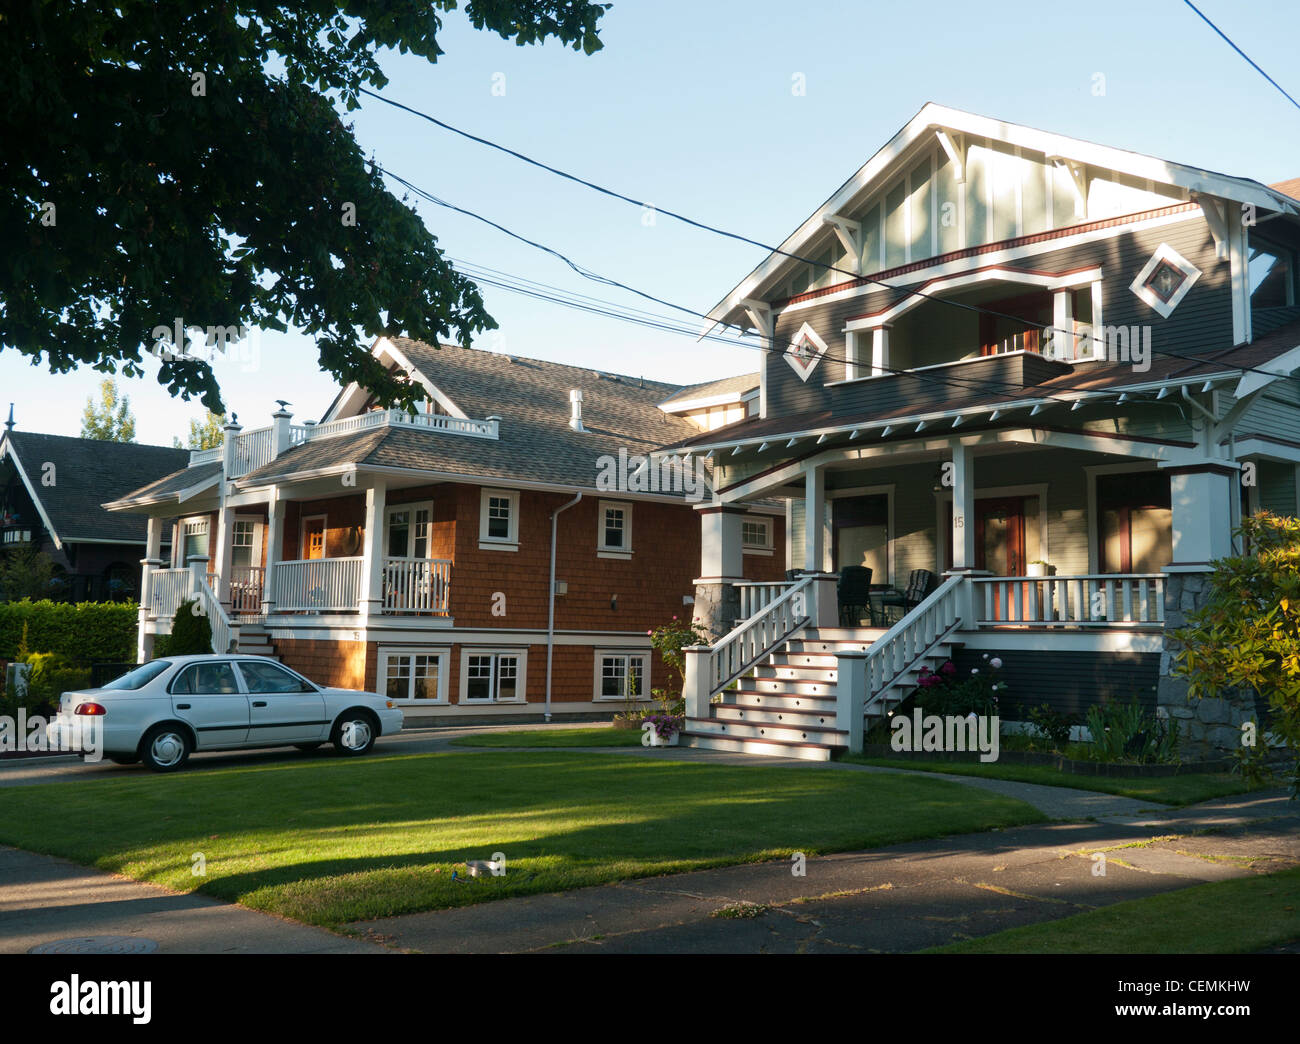 Houses in a suburb of Victoria on Vancouver Island in Canada - Stock Image